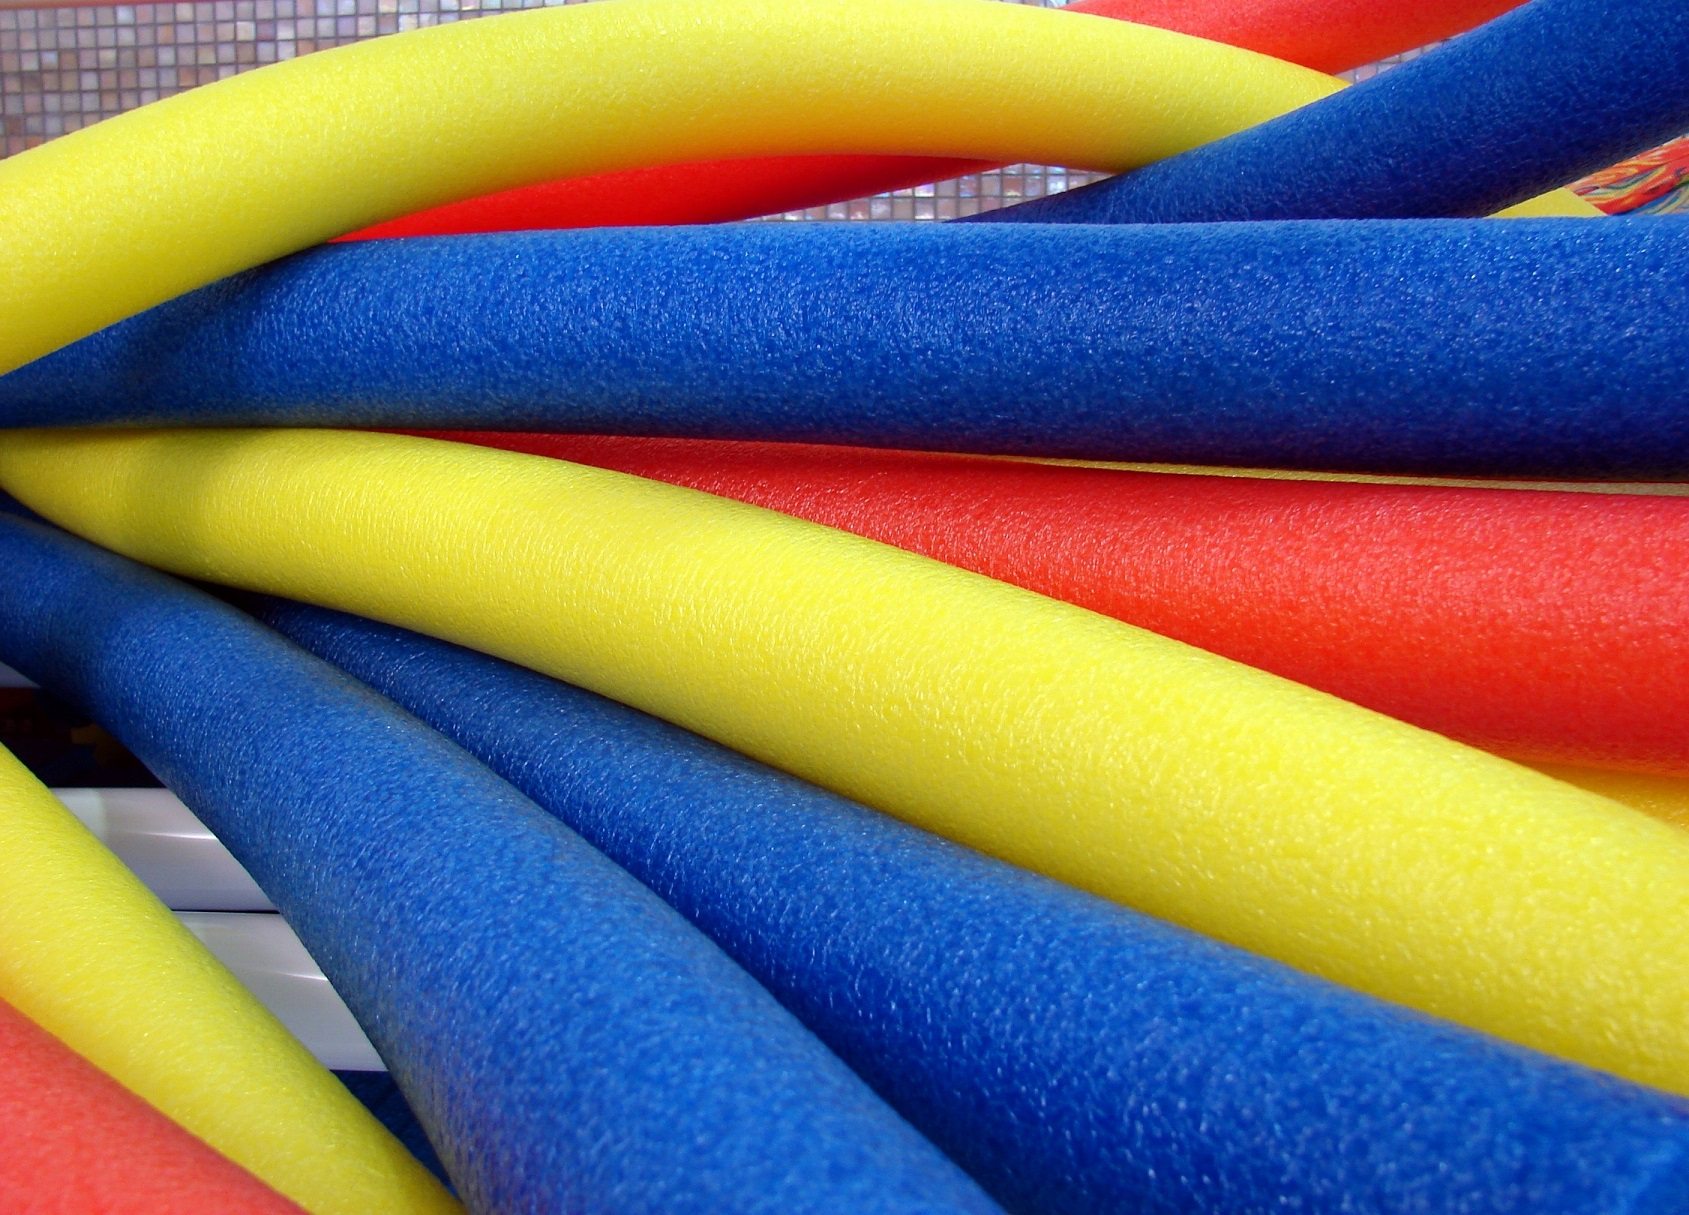 Physical Education Lesson Ideas Using Pool Noodles